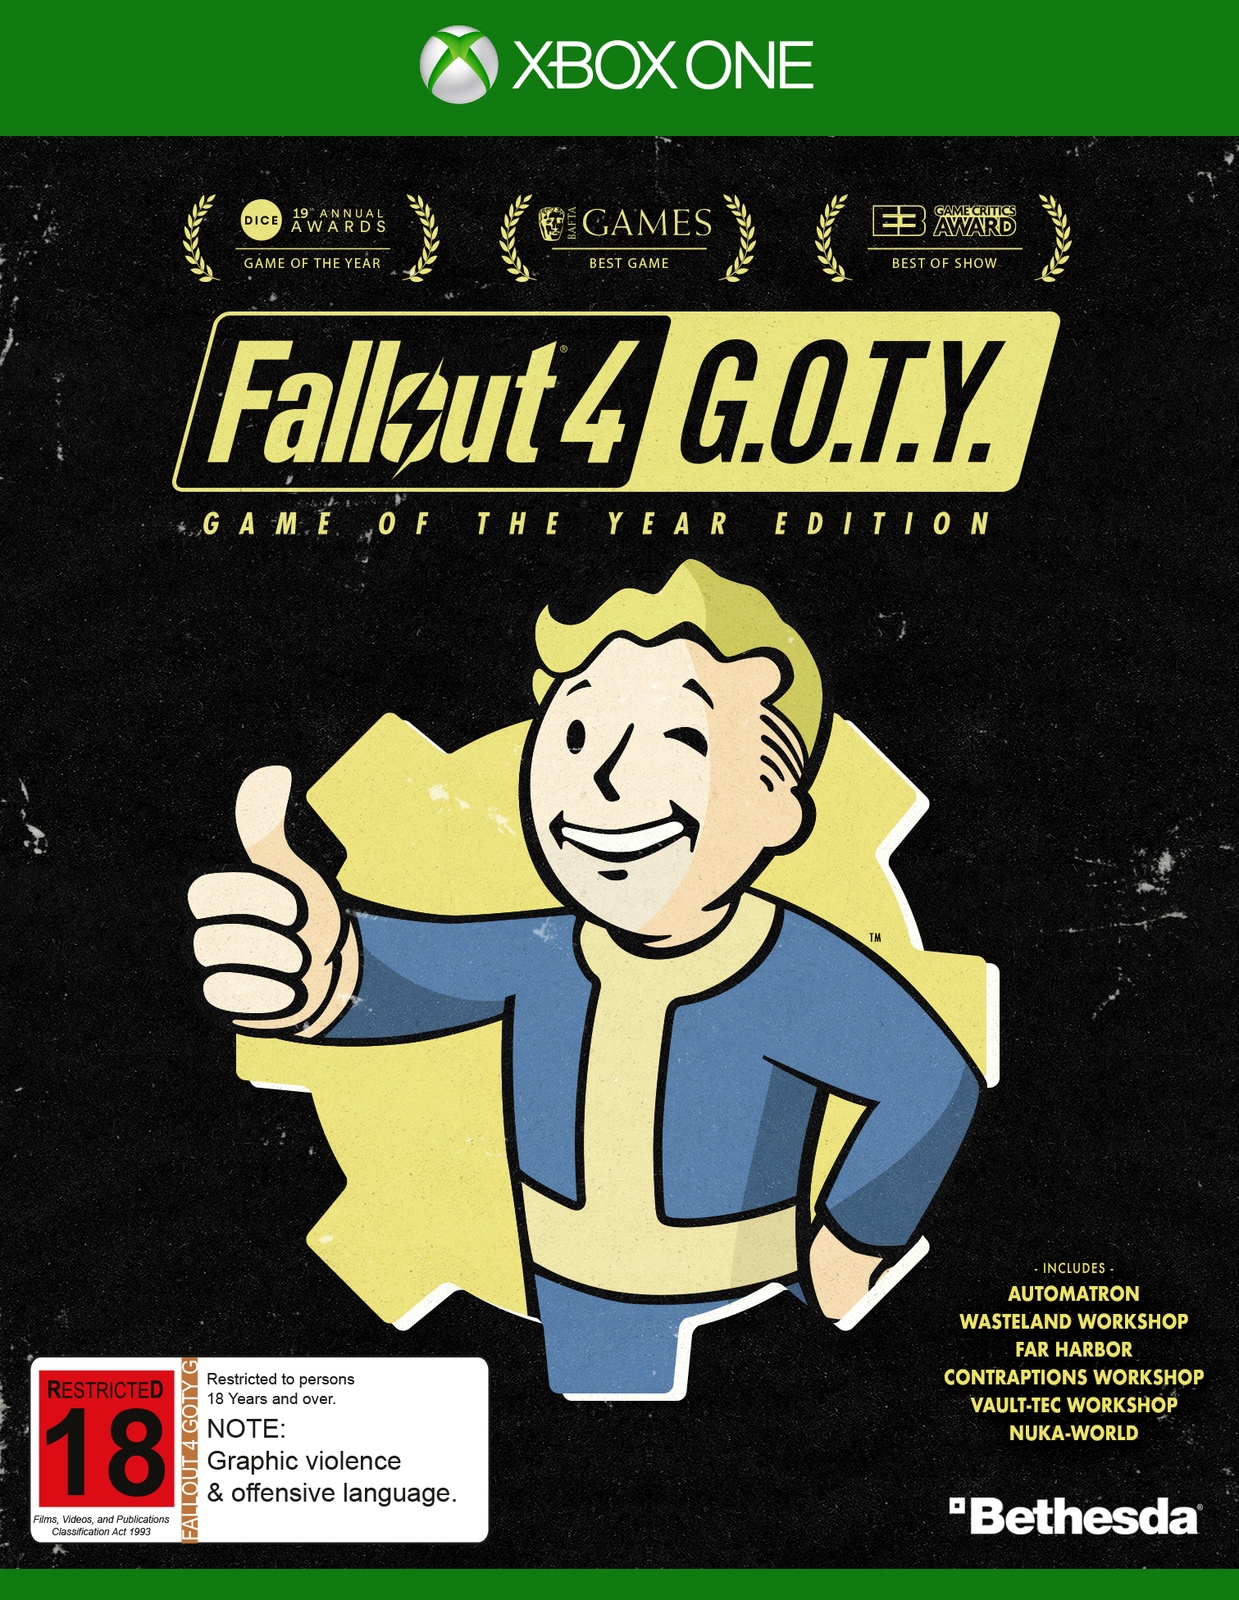 Fallout 4 Game of the Year Edition for Xbox One image